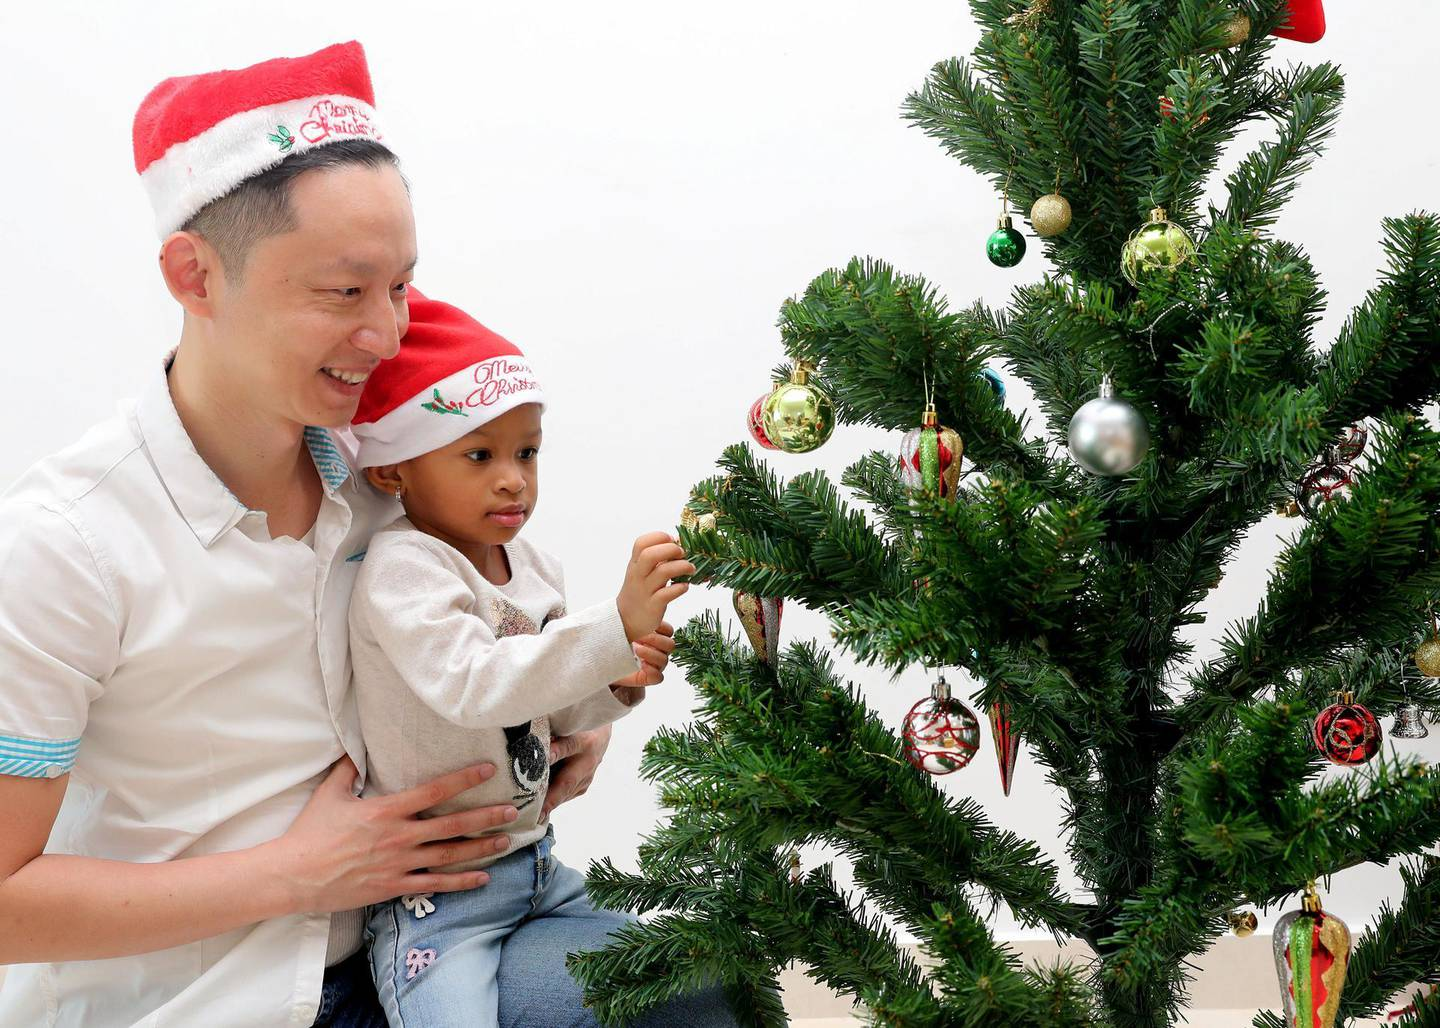 Abu Dhabi, United Arab Emirates - December 05, 2018: Tuan Phan with daughter Alma 2. Tuan is a meteorologist by day who blogs for non-profit community SimplyFI.org, which encourages investors to follow the investment principles established by Jack Bogle, the founder of Vanguard. He is one of the personal finance bloggers talking about their Christmas and Christmas advice to avoid blowing your bank account during the festive season. Wednesday the 5th of December 2018 on Yas Island, Abu Dhabi. Chris Whiteoak / The National